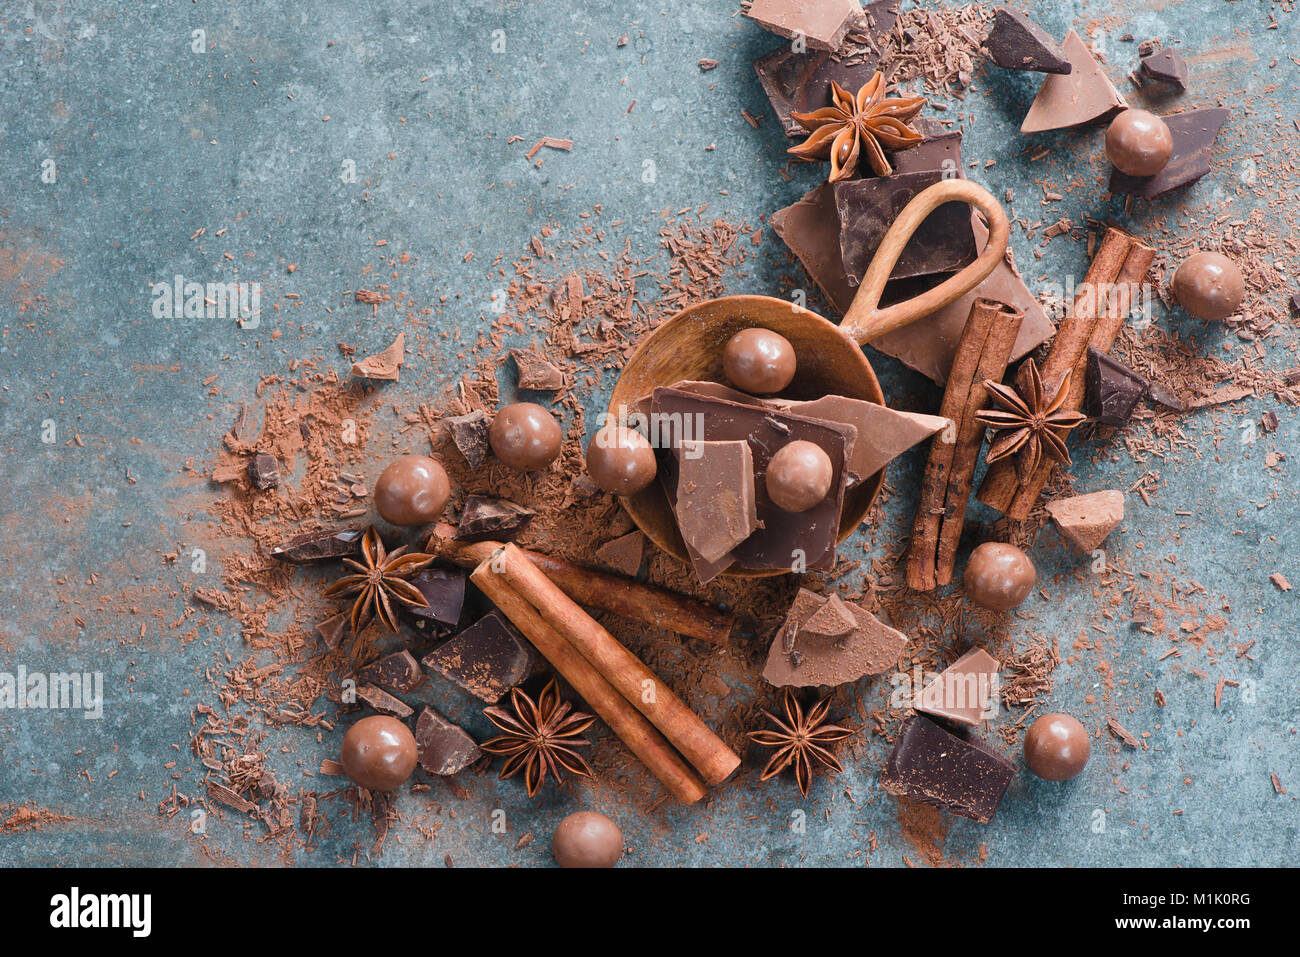 Flat lay with dessert ingredients close-up. Chocolate pieces with spices and scattered cocoa on a stone background - Stock Image